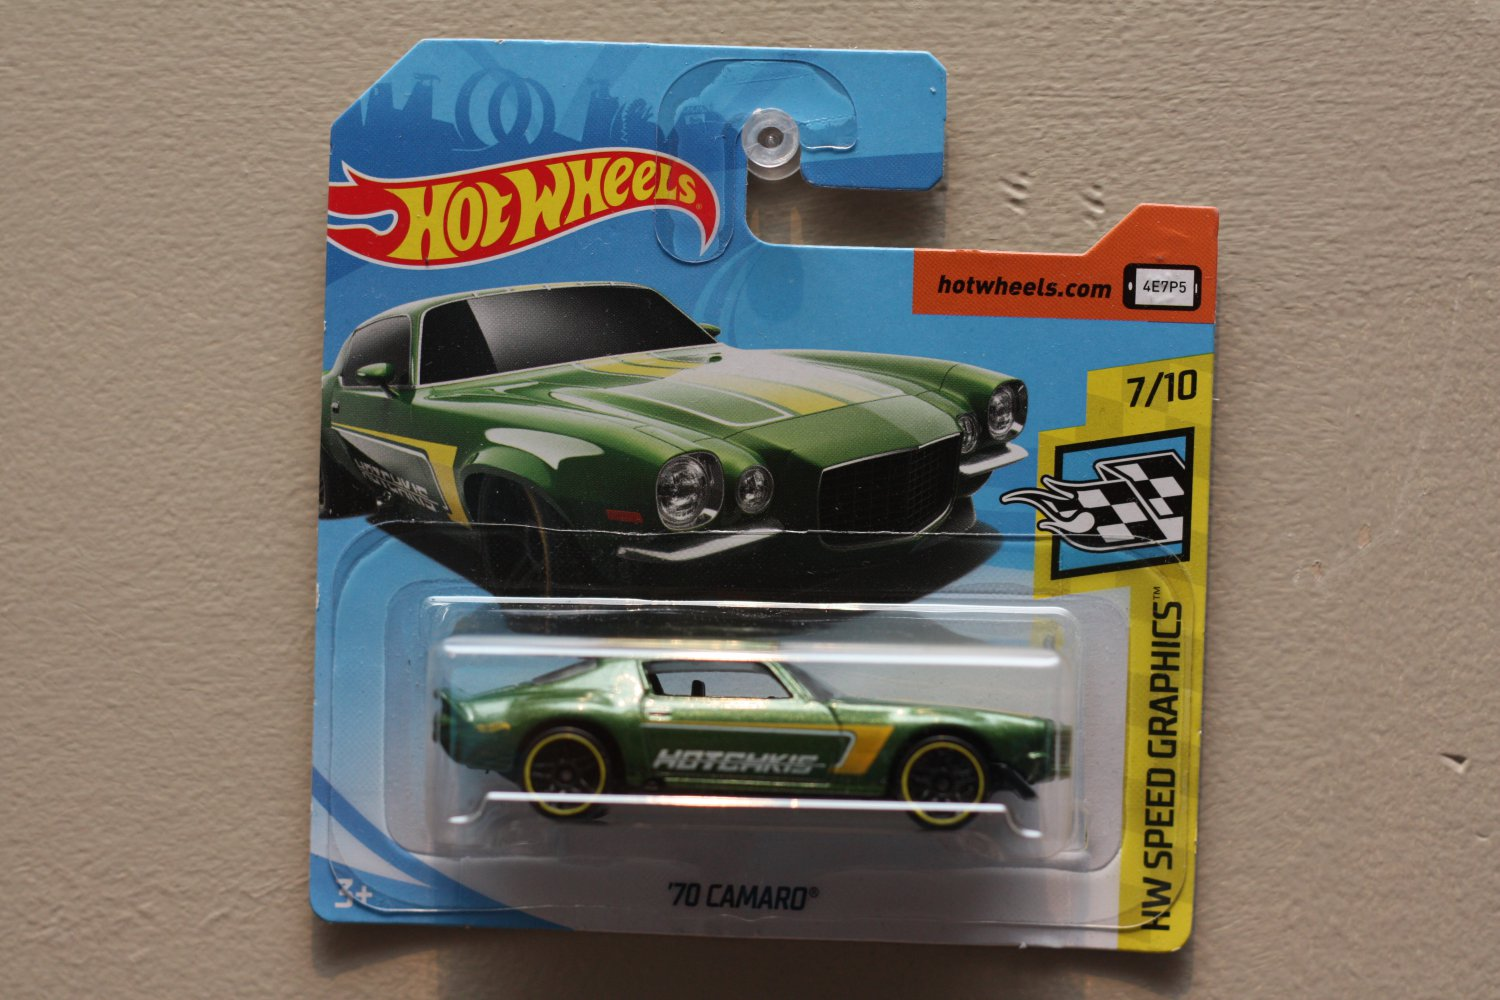 Hot Wheels 2018 Legends Of Speed '70 Camaro (green)